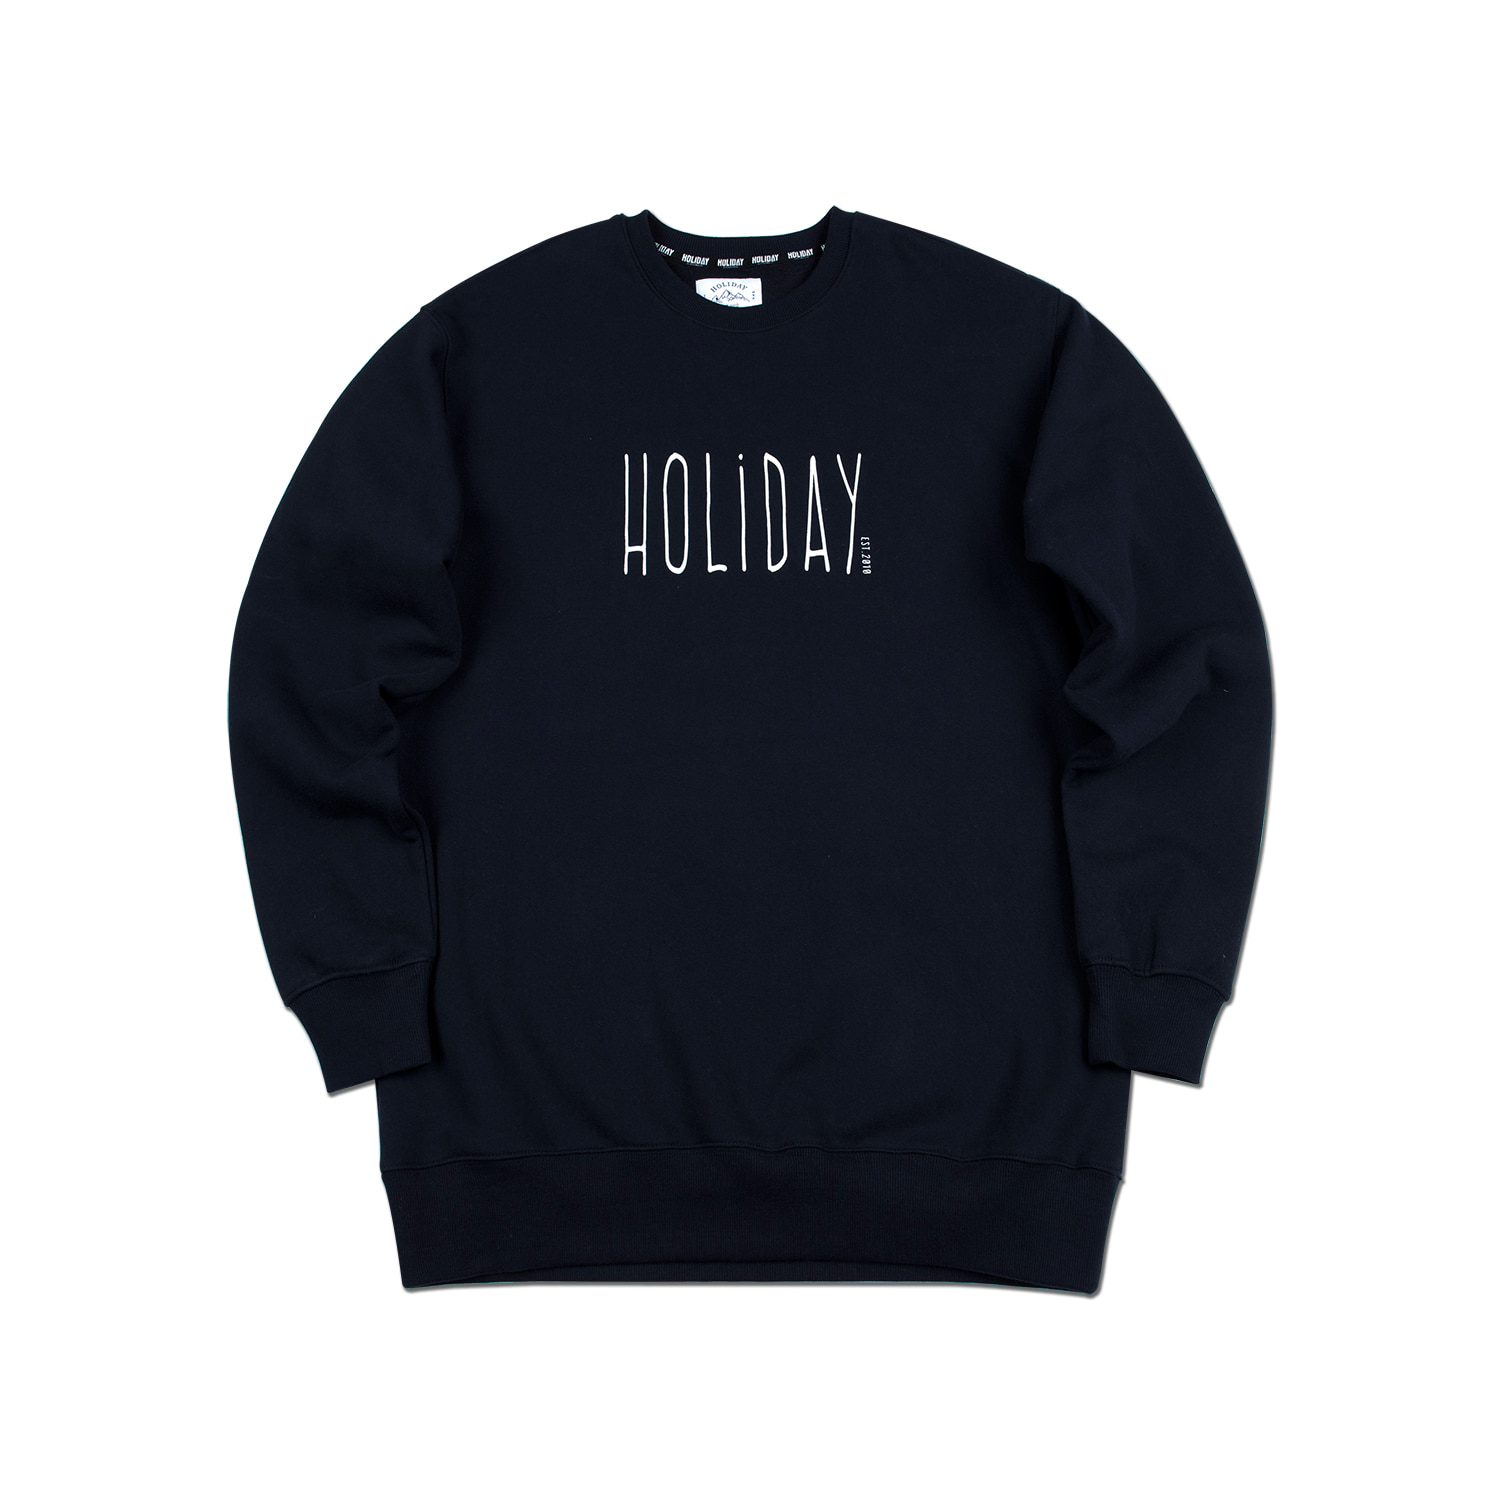 JOY crewneck - navyHOLIDAY OUTERWEAR